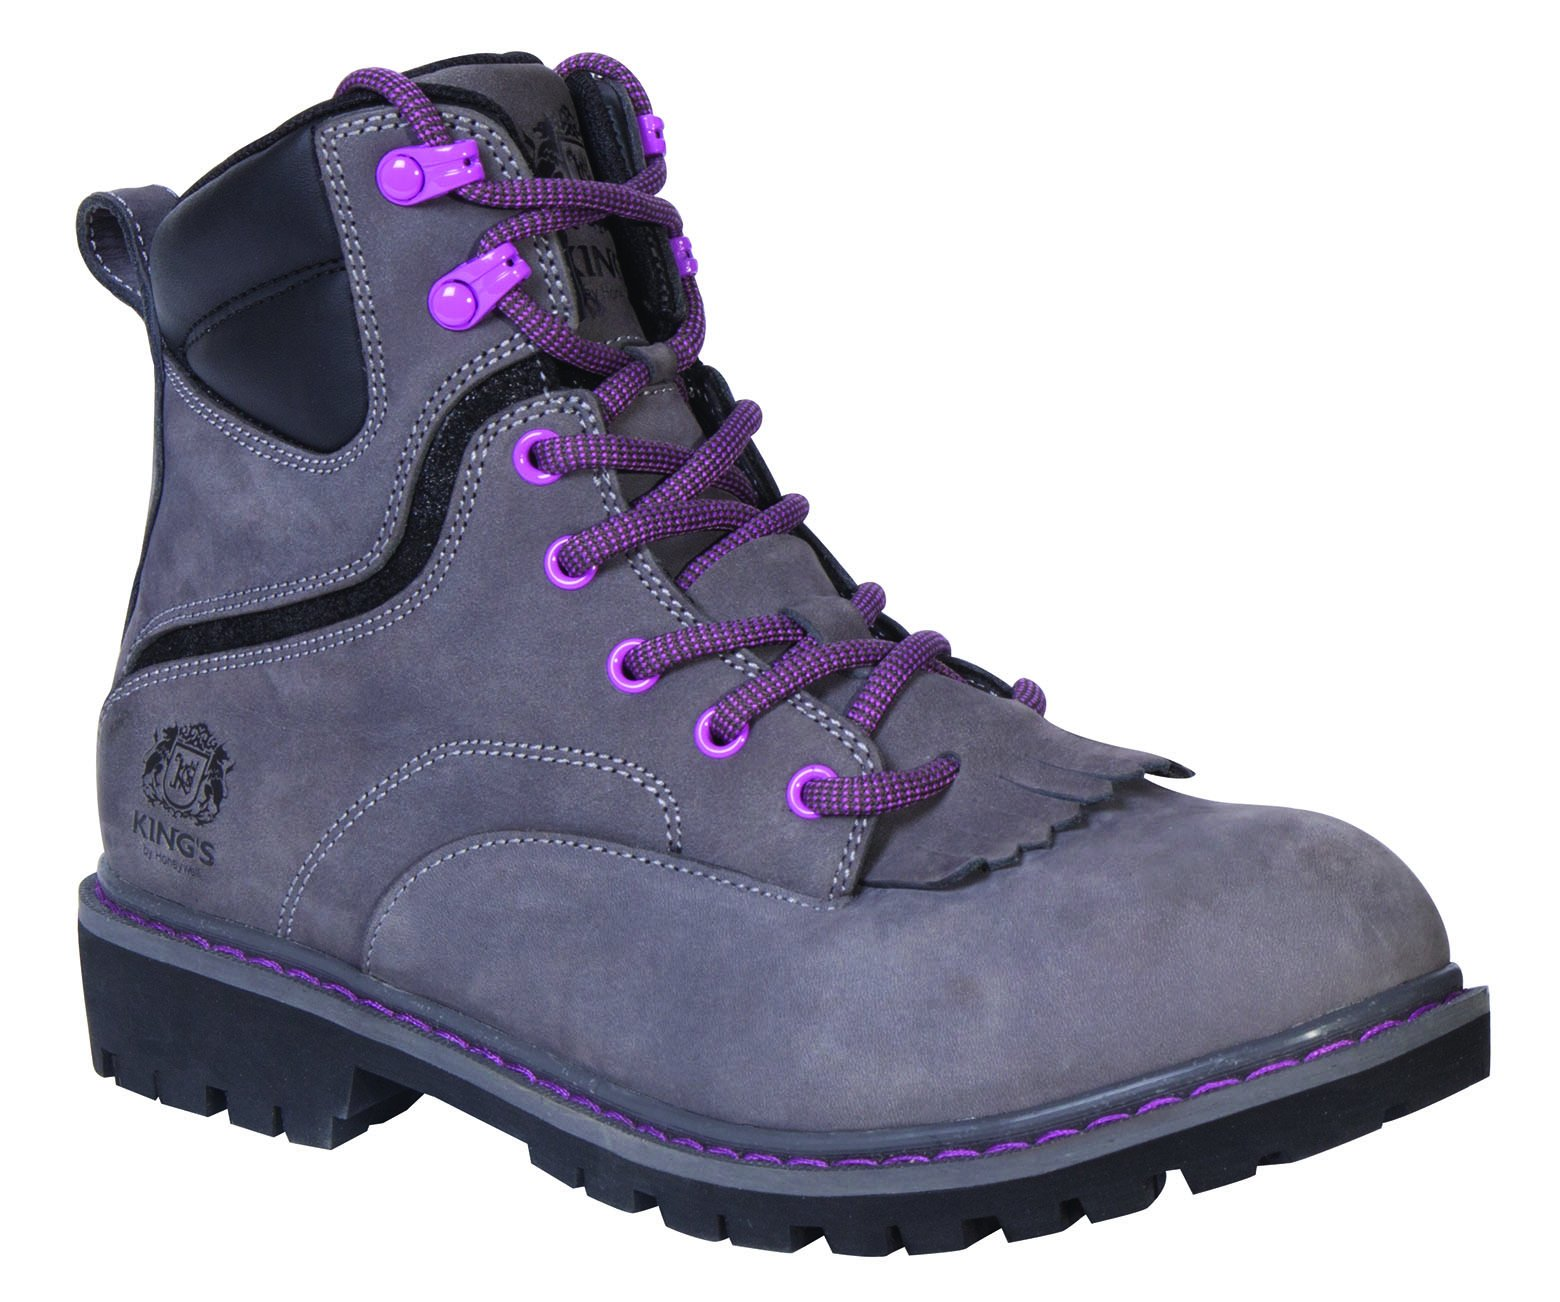 King's by Honeywell KWLK02 6'' WOMEN'S Steel Toe Welted Leather Work Boot, Gray, Size 6